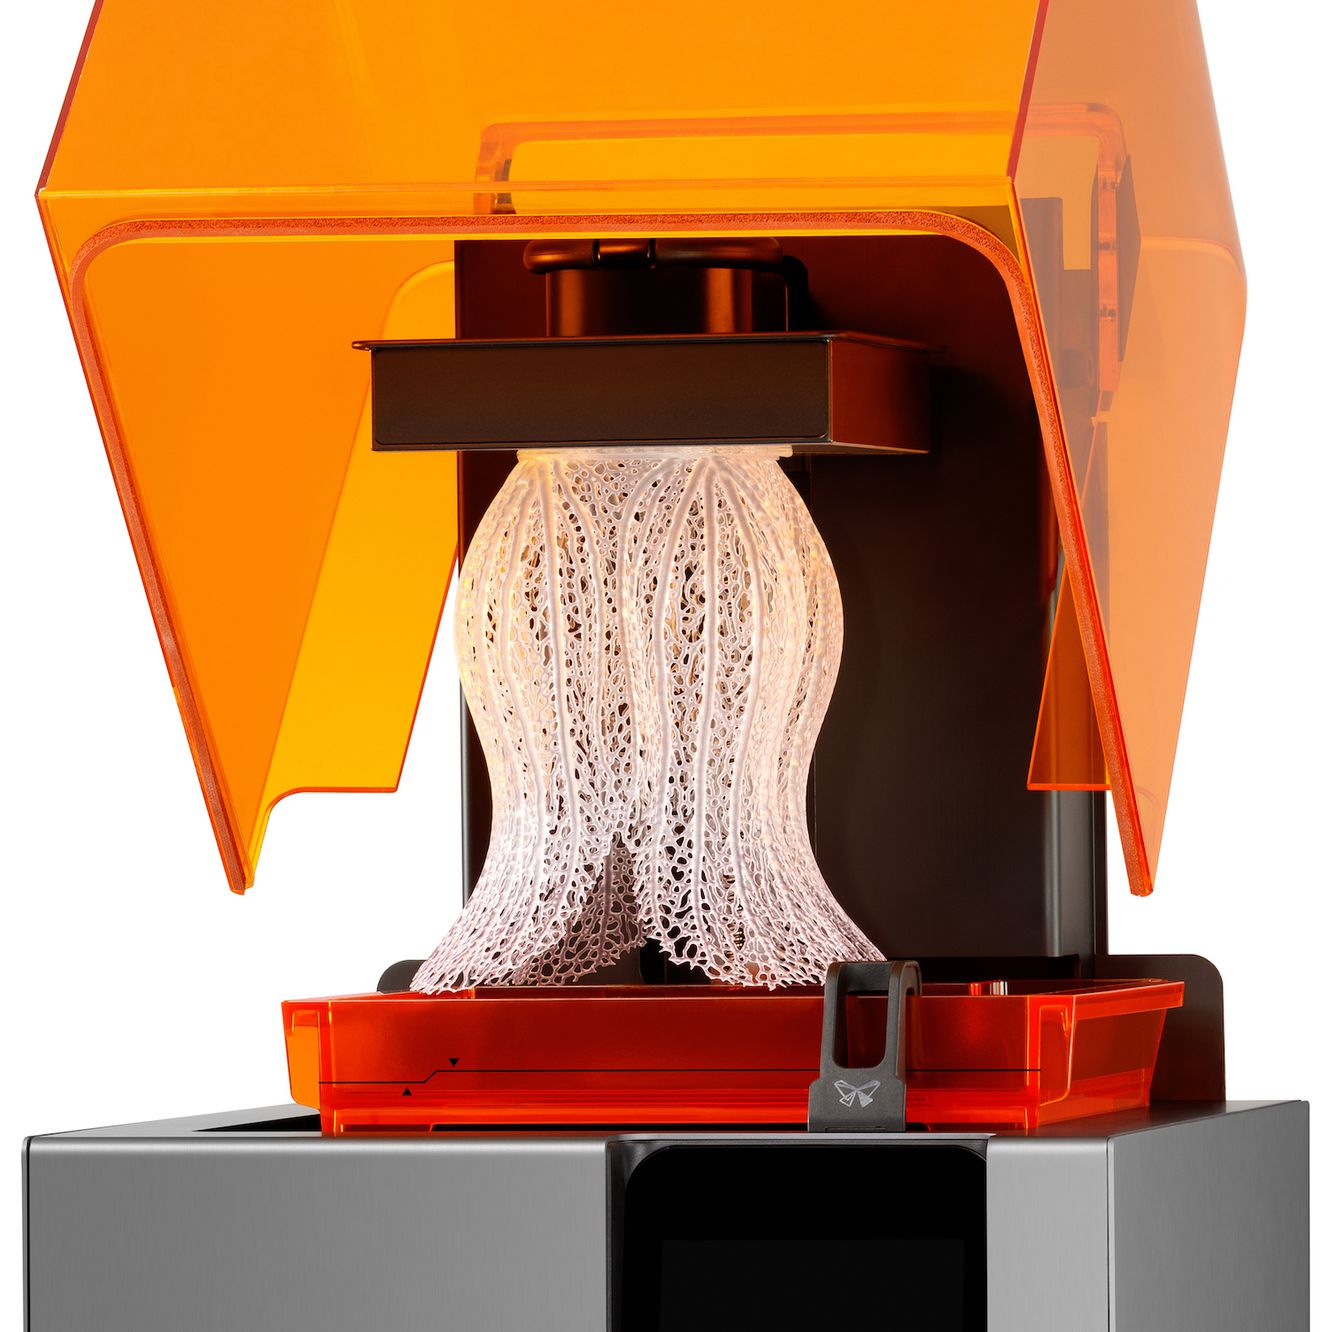 what does resolution mean in 3d printing formlabs